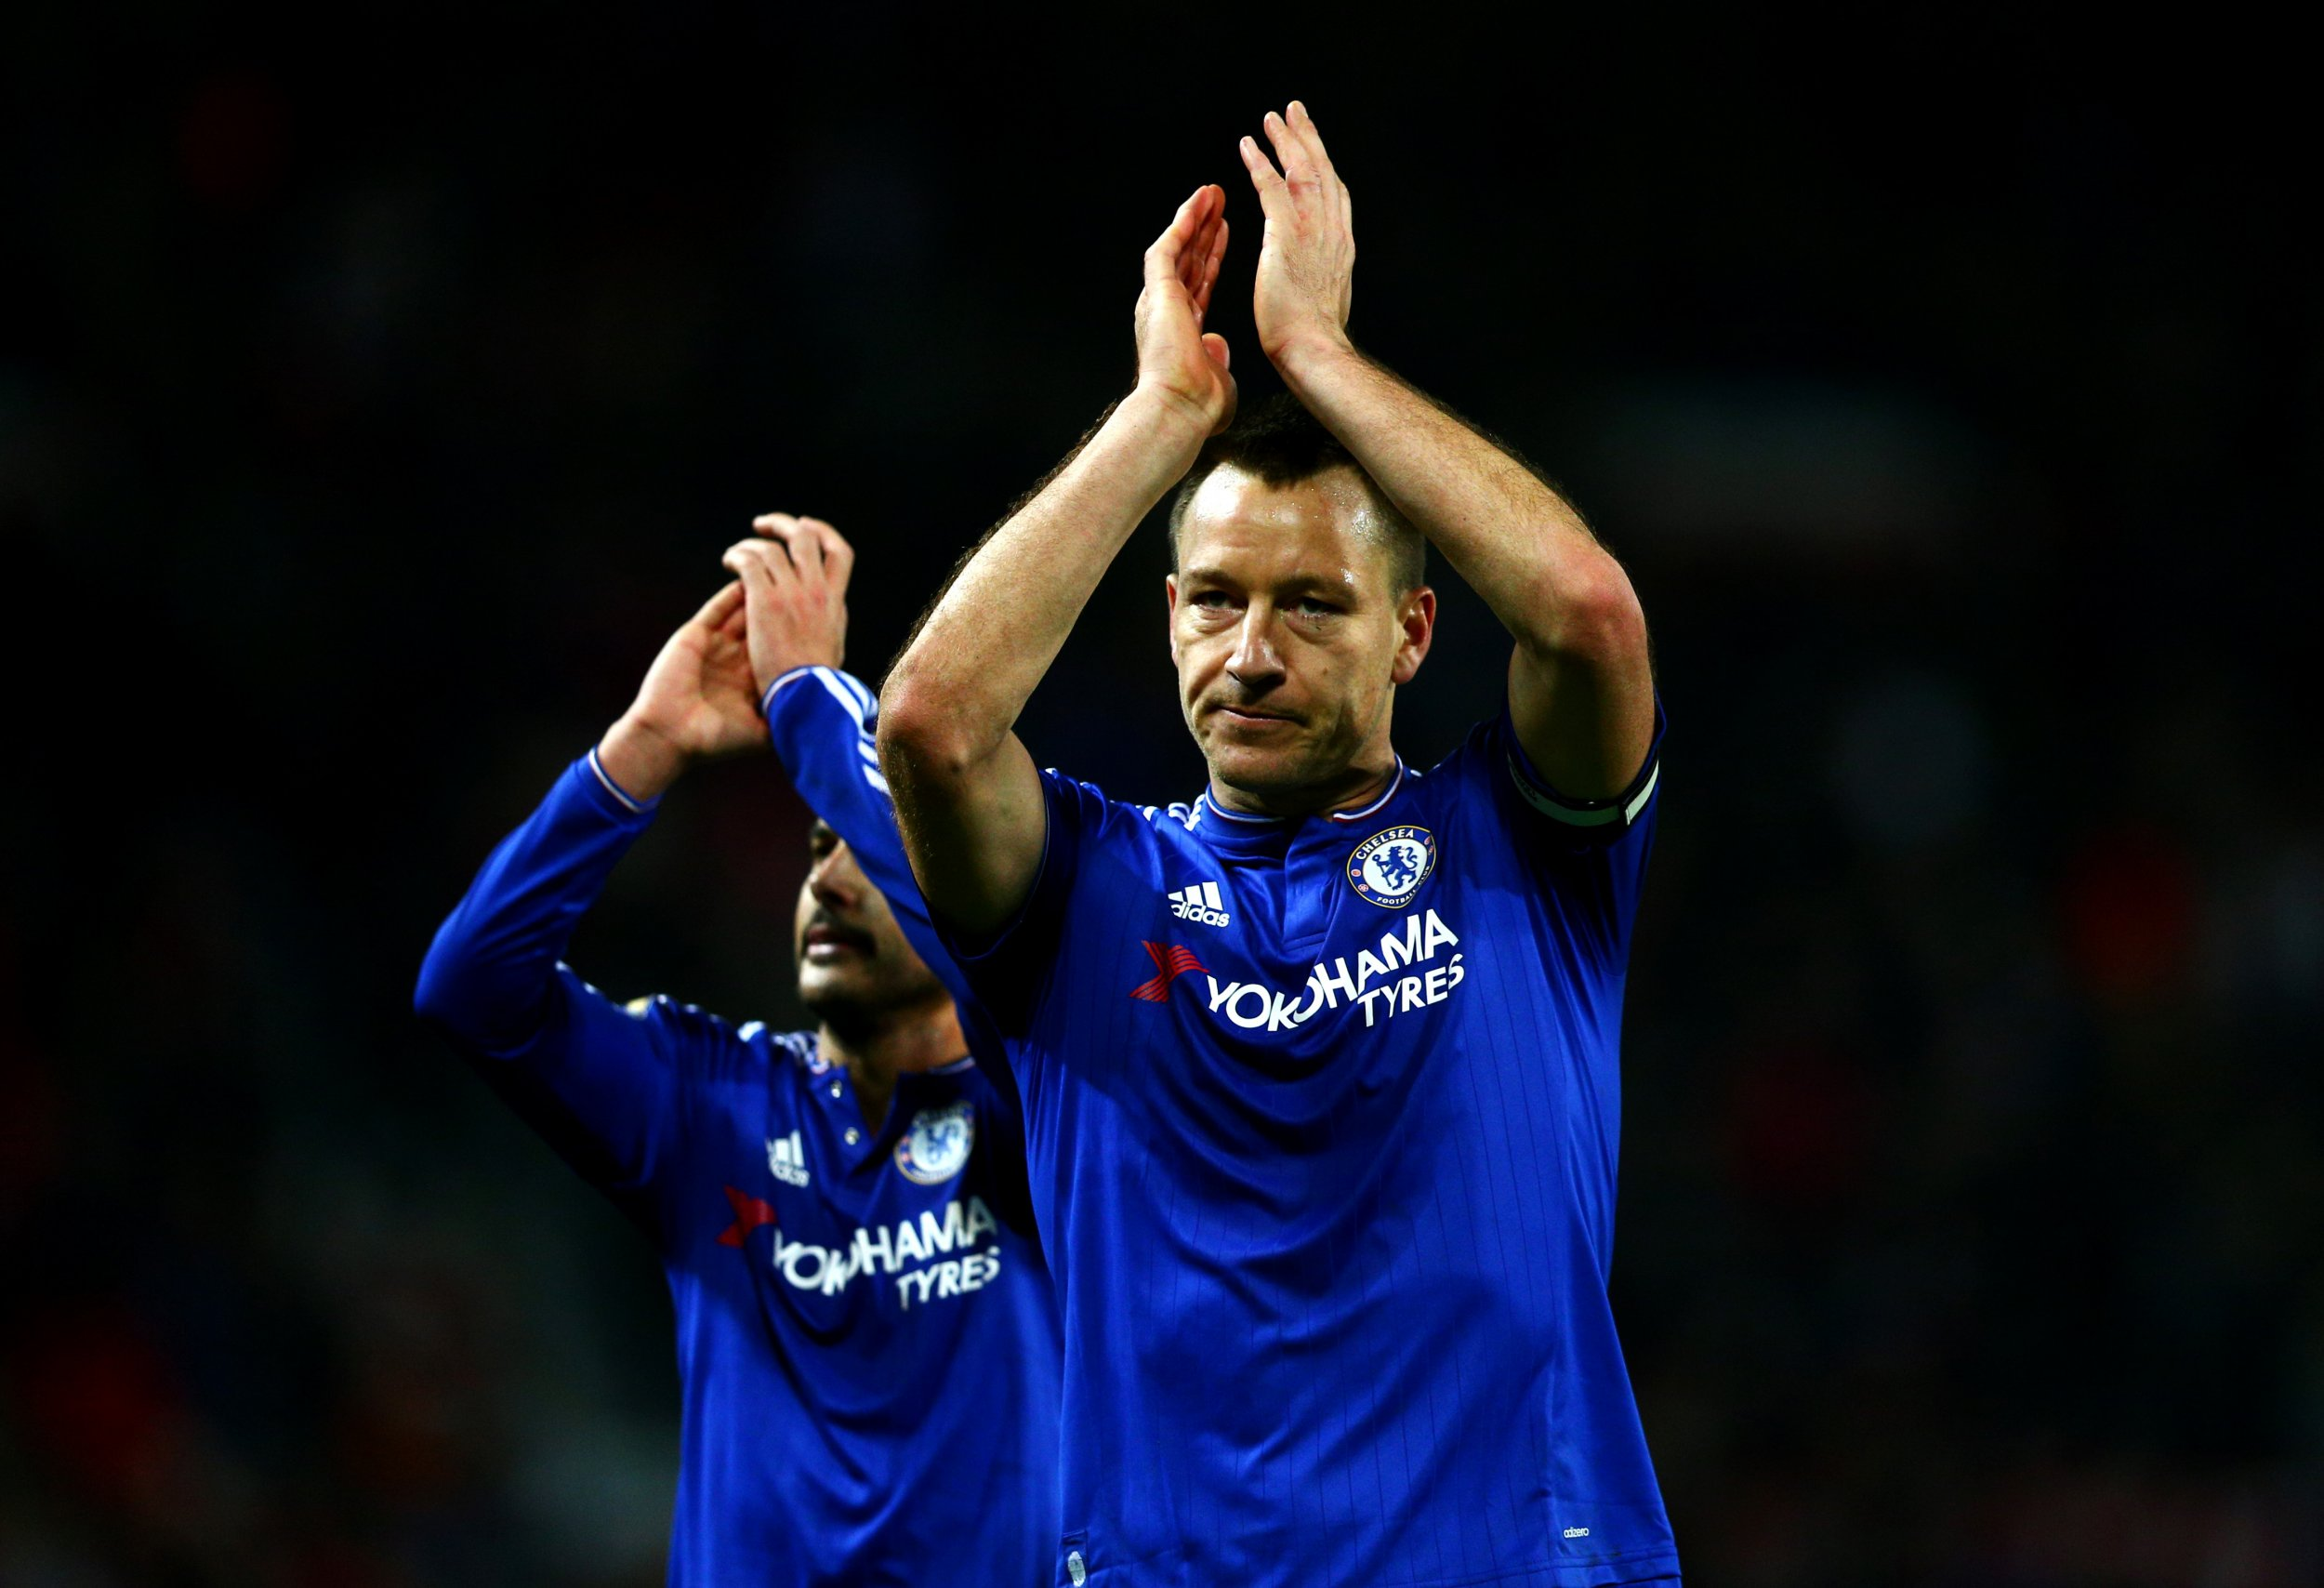 Chelsea has not offered John Terry a contract extension.